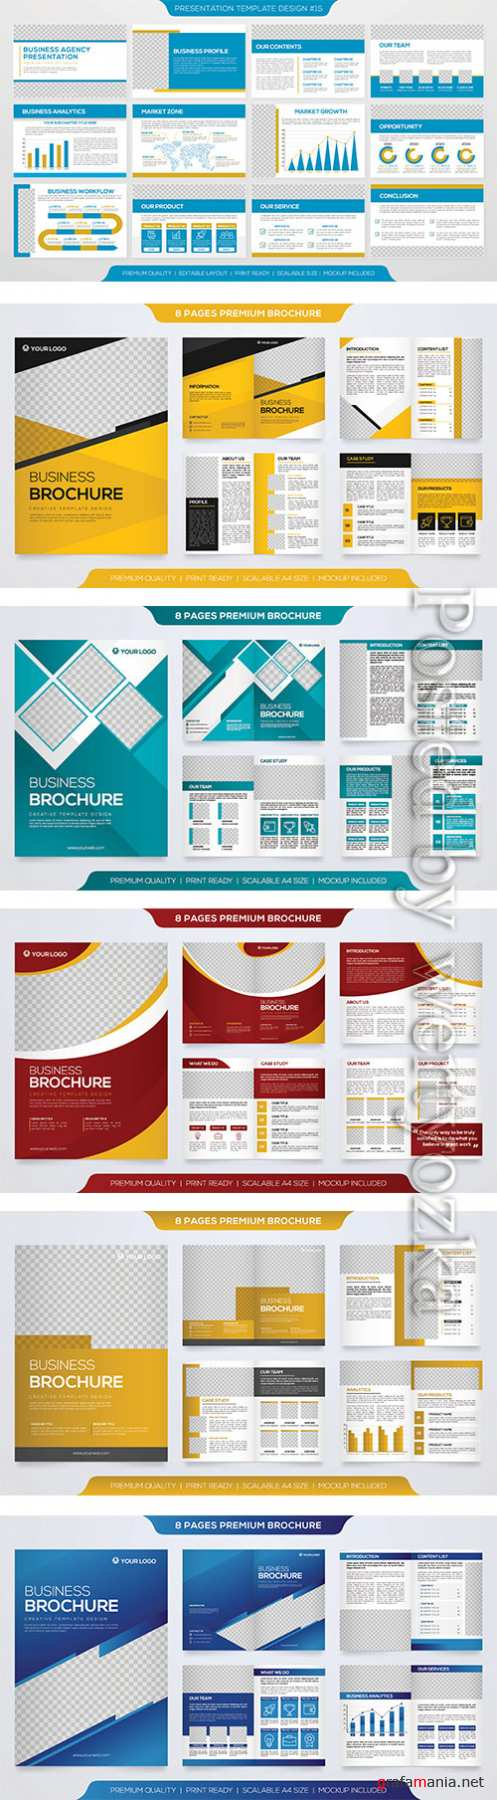 Brochure template design with minimalist concept